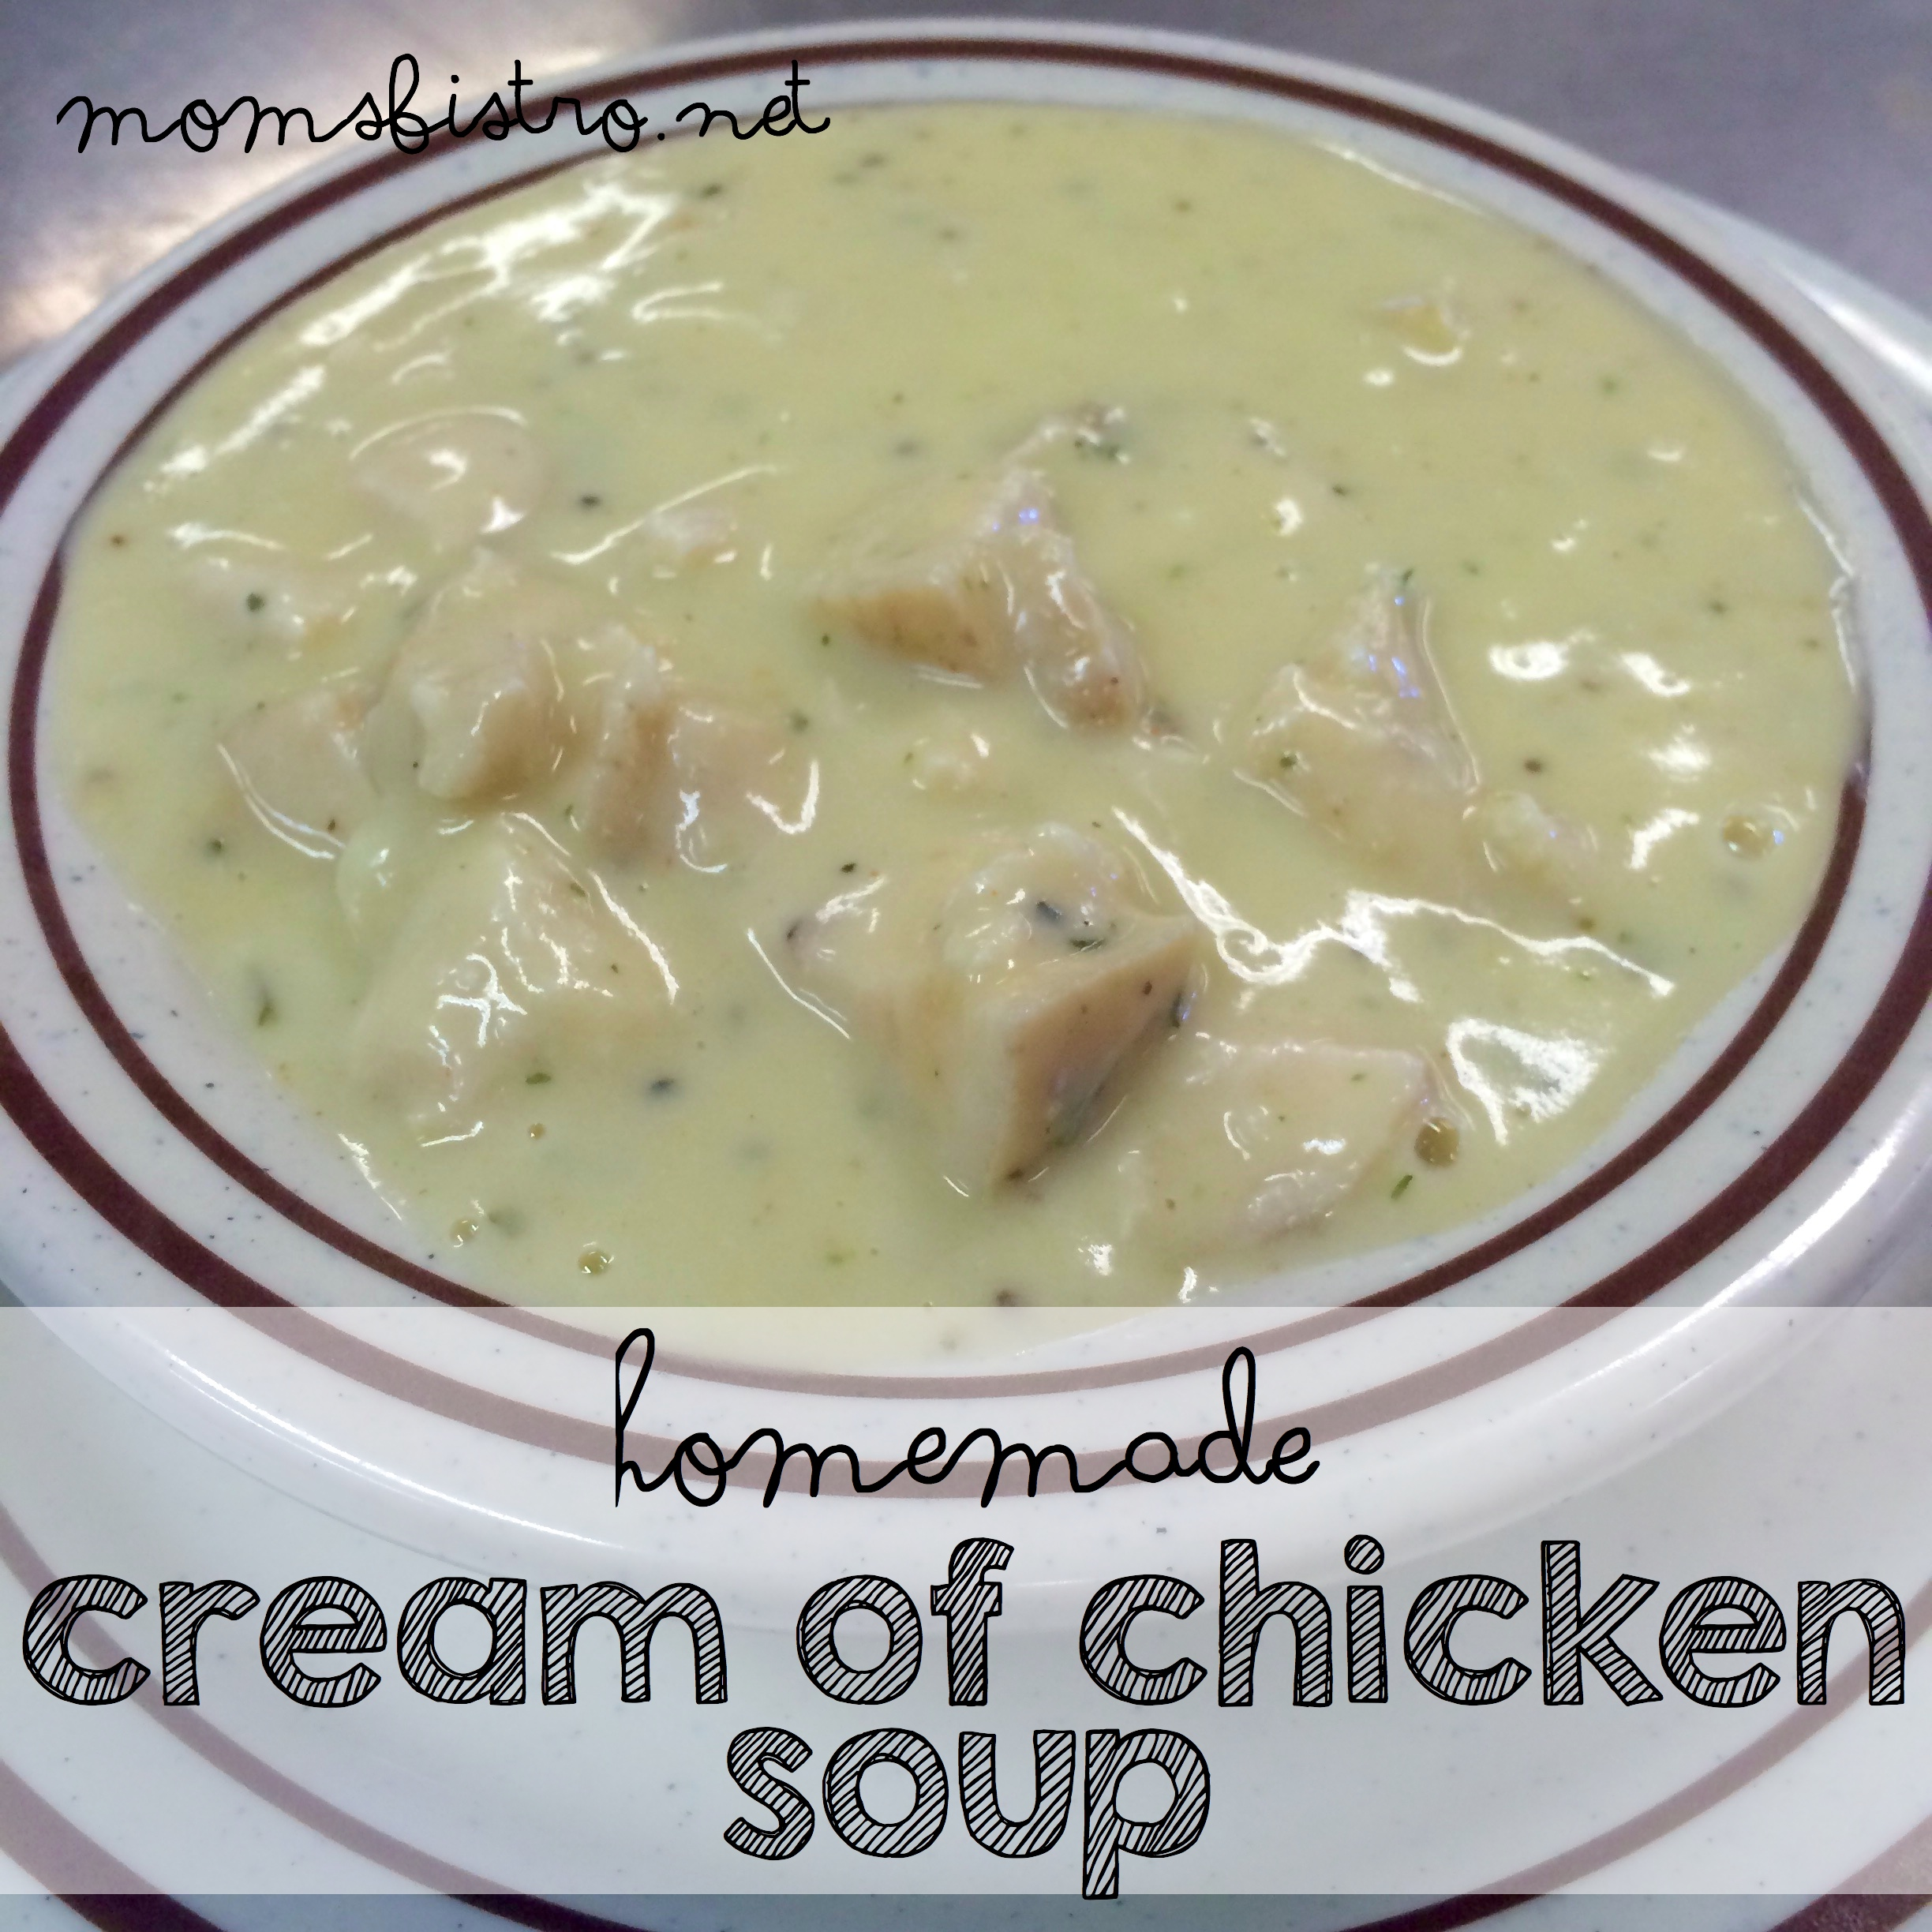 It's Easier Than You Think!  Homemade Cream of Chicken Soup – Ditch The Can with This Simple 5 Minute Substitution for Cream of Chicken Soup from Scratch